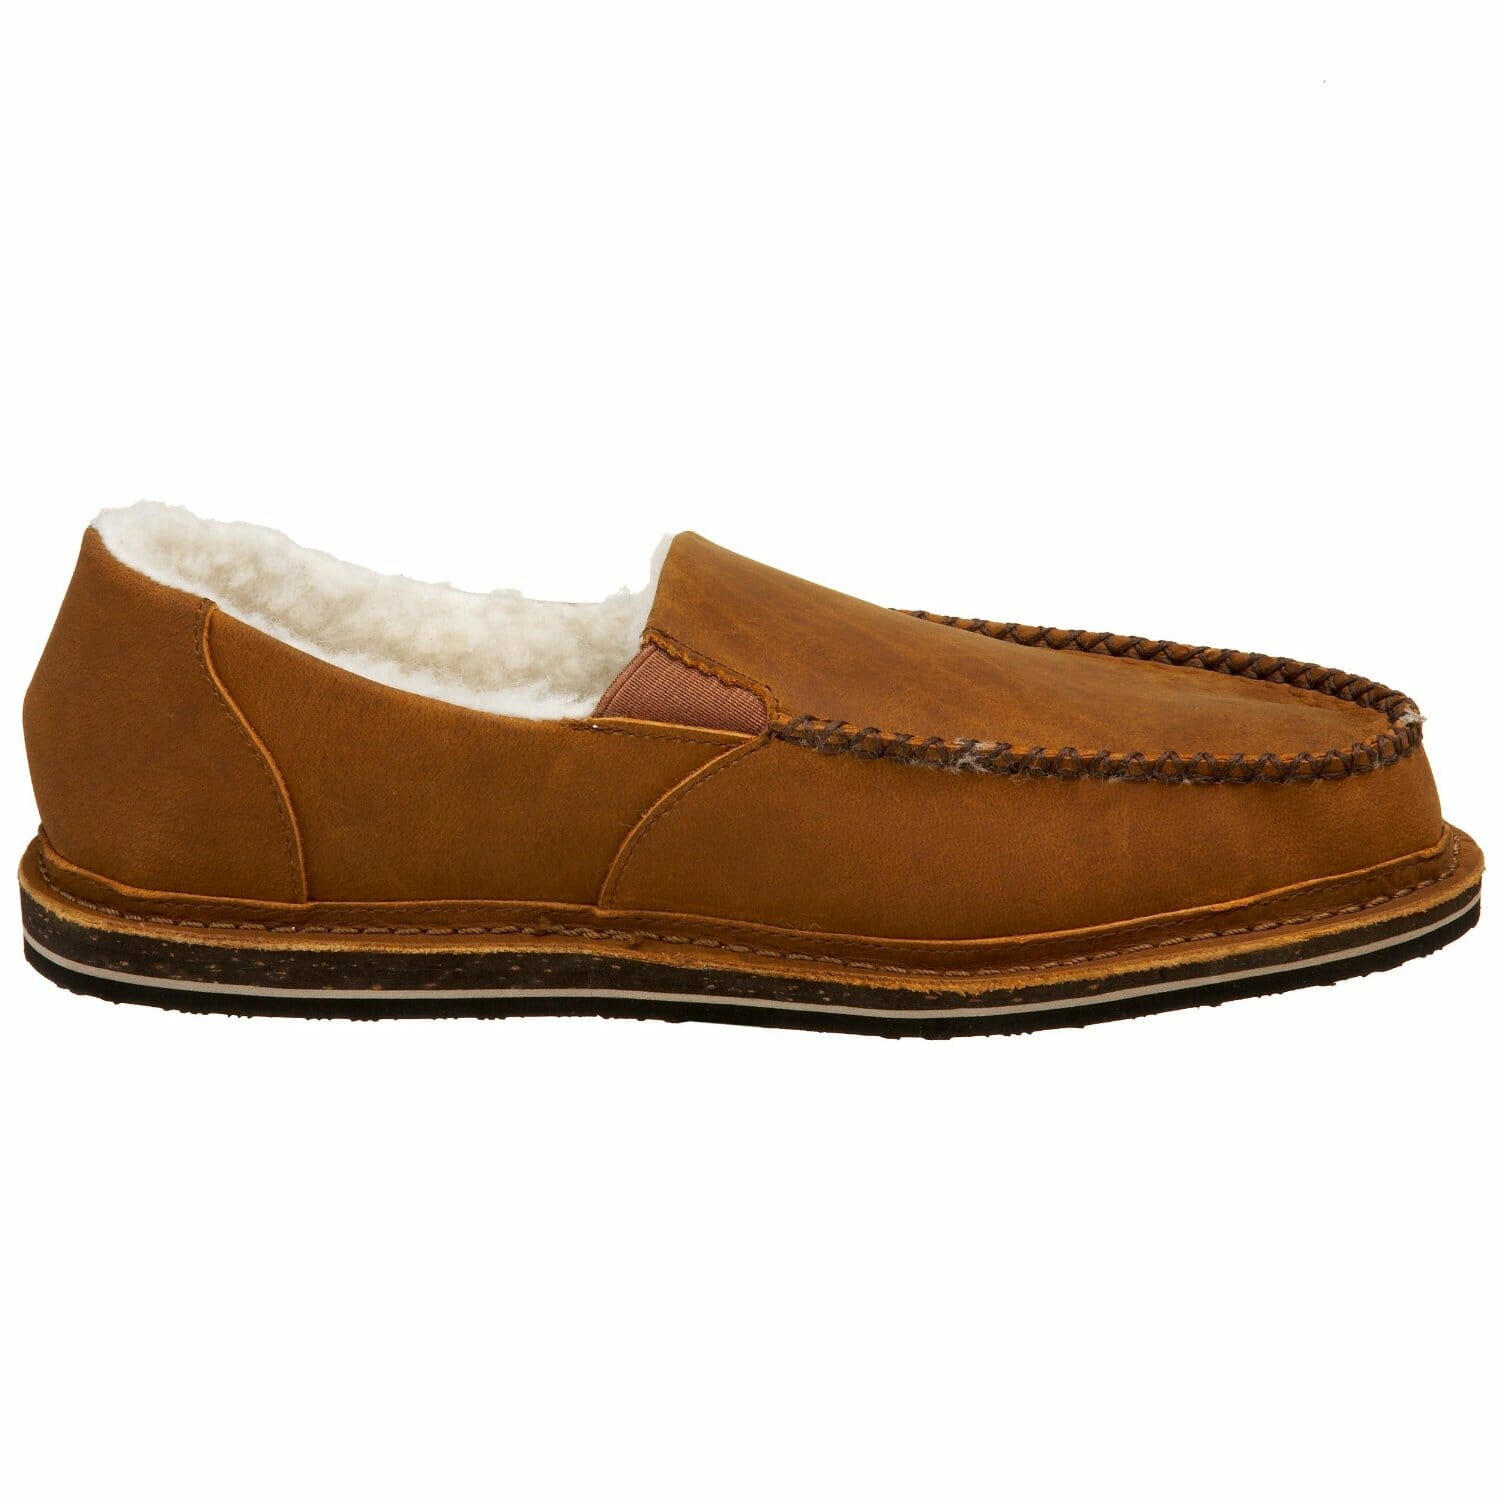 Bearpaw Men's Hudson Loafer